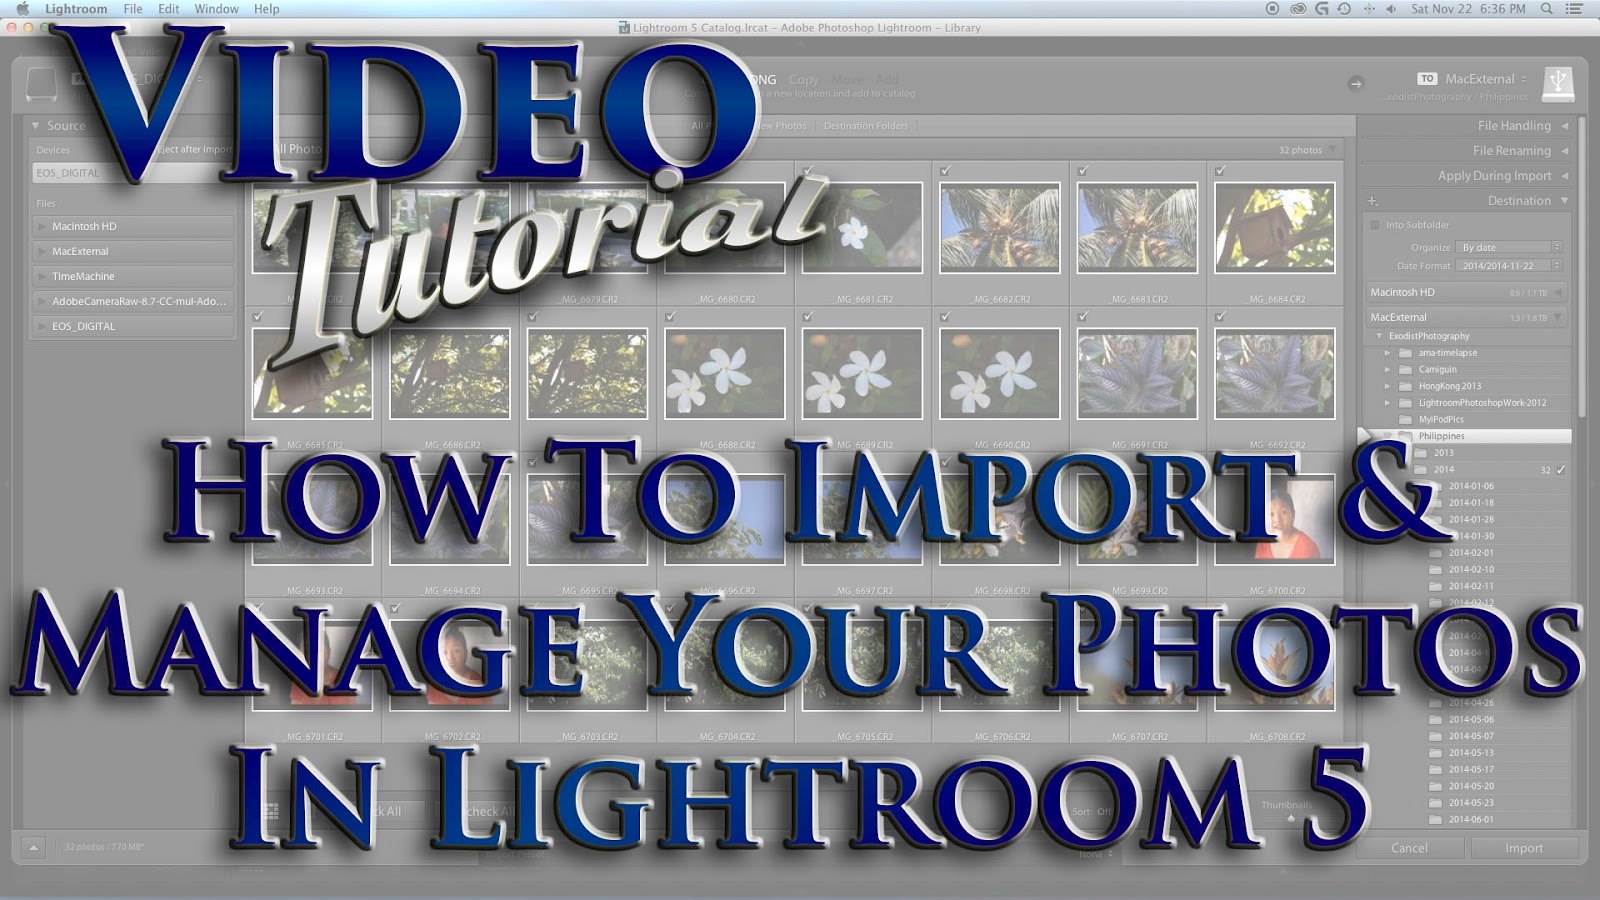 Learn How To Import & Manage Your Photos In Lightroom 5